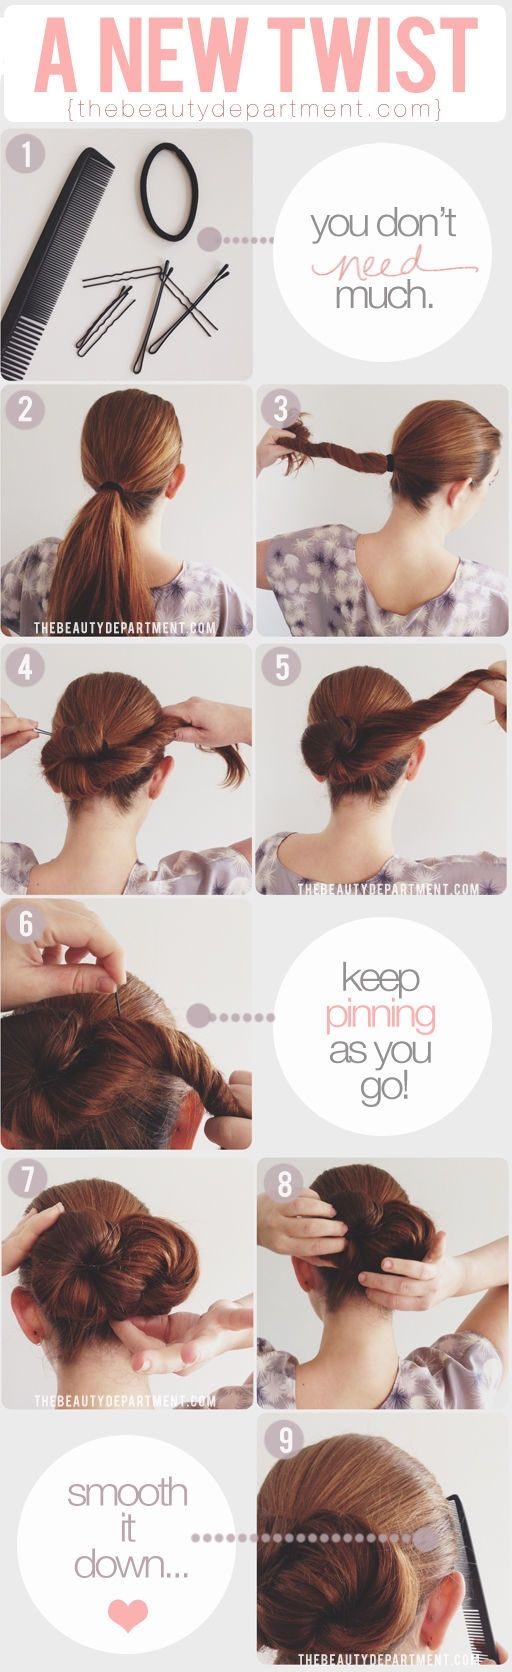 Diy,diy hairstyle,hairstyle,beauty,beauty tips-prelepo!